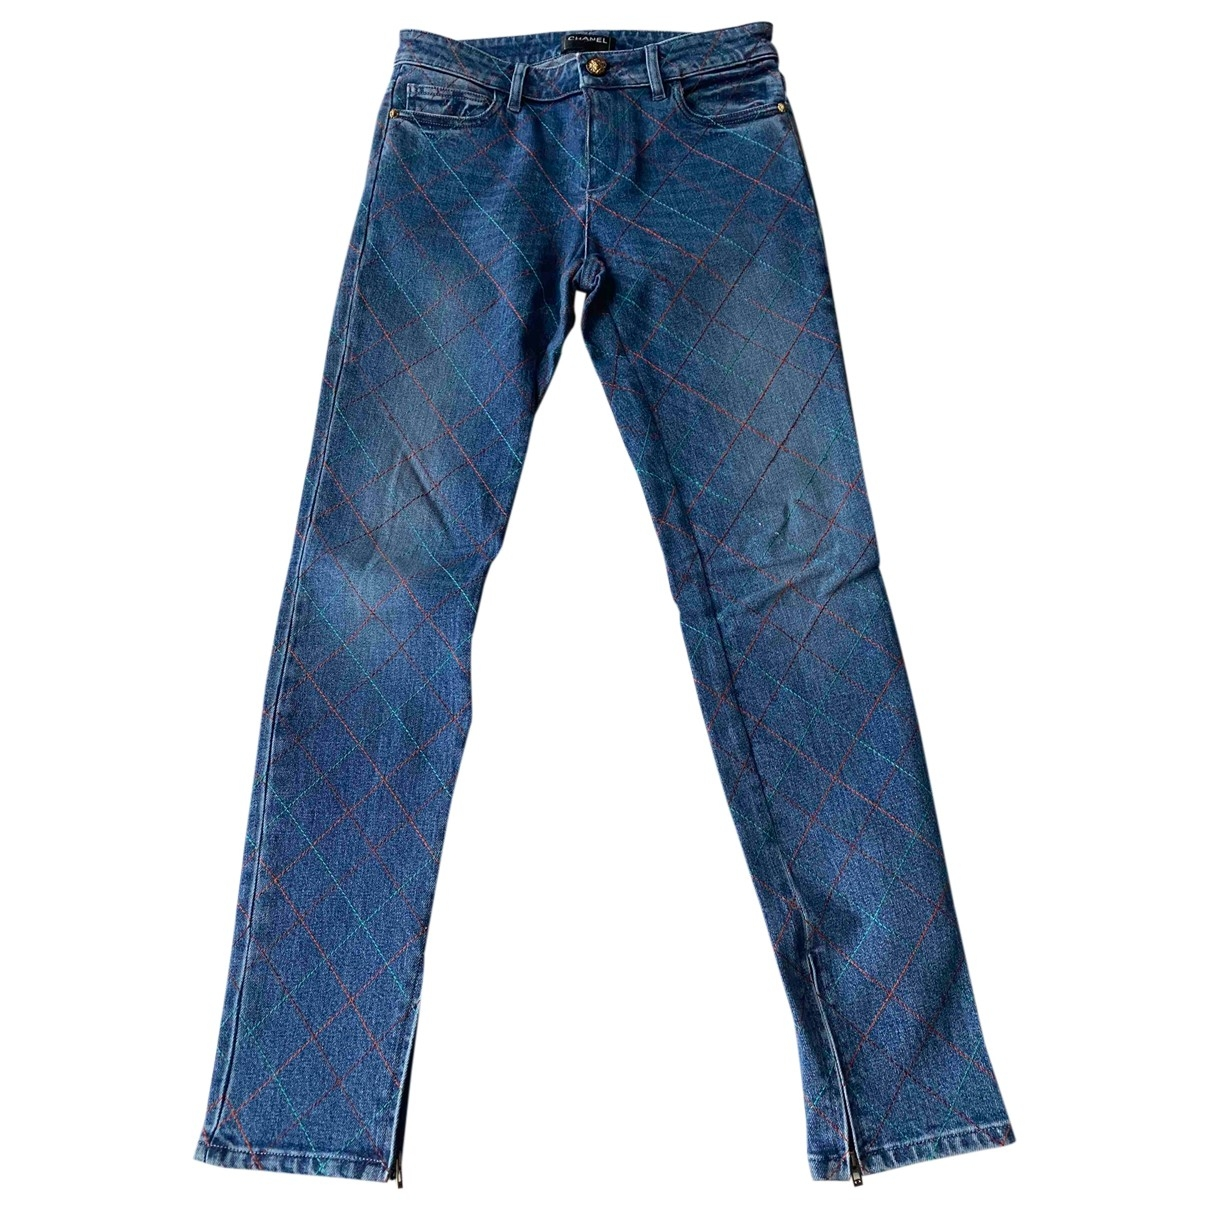 Chanel \N Blue Cotton Jeans for Women 38 FR